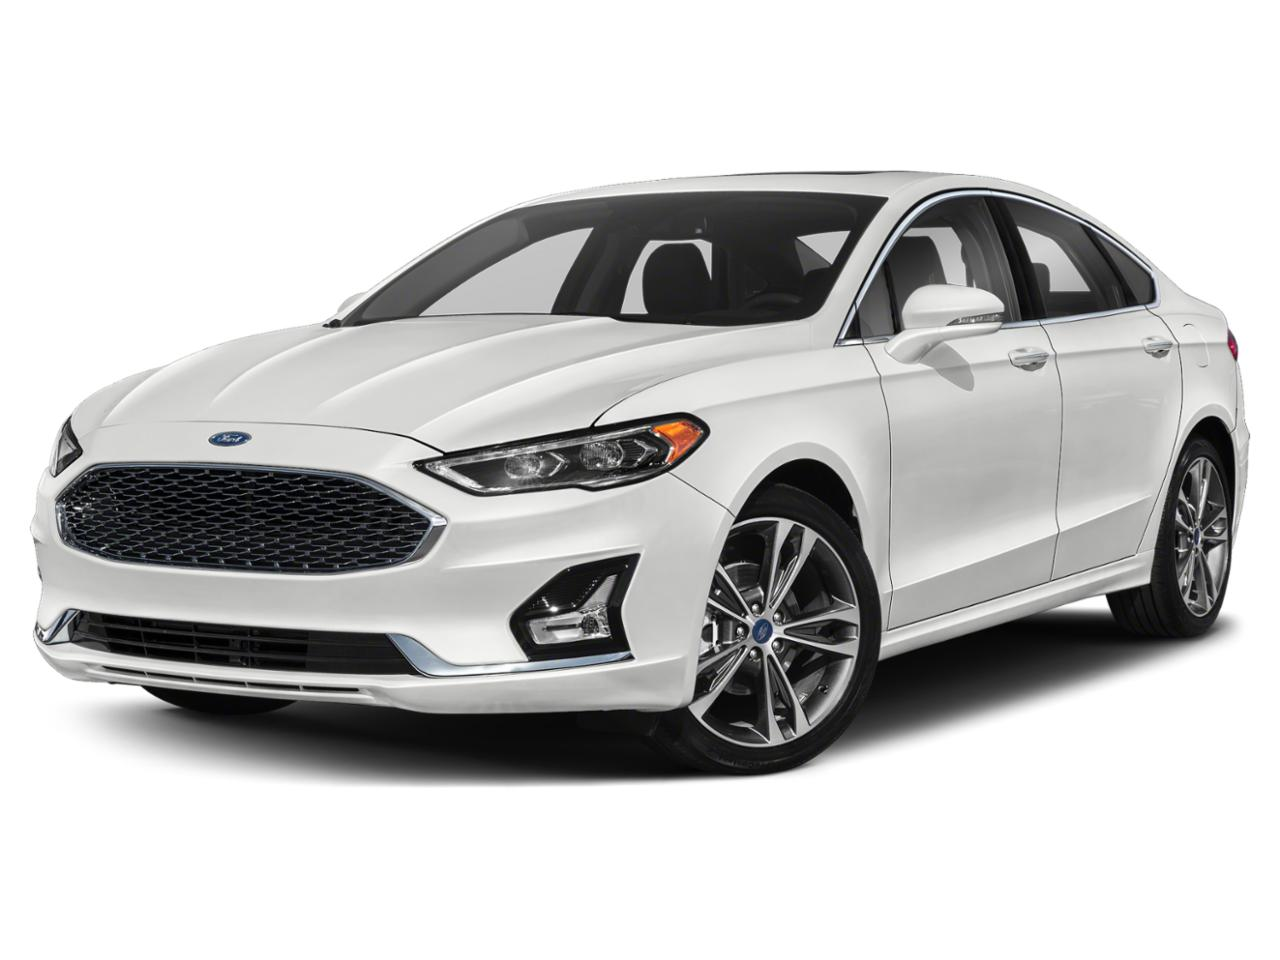 2020 Ford Fusion TITANIUM 4dr Car Slide